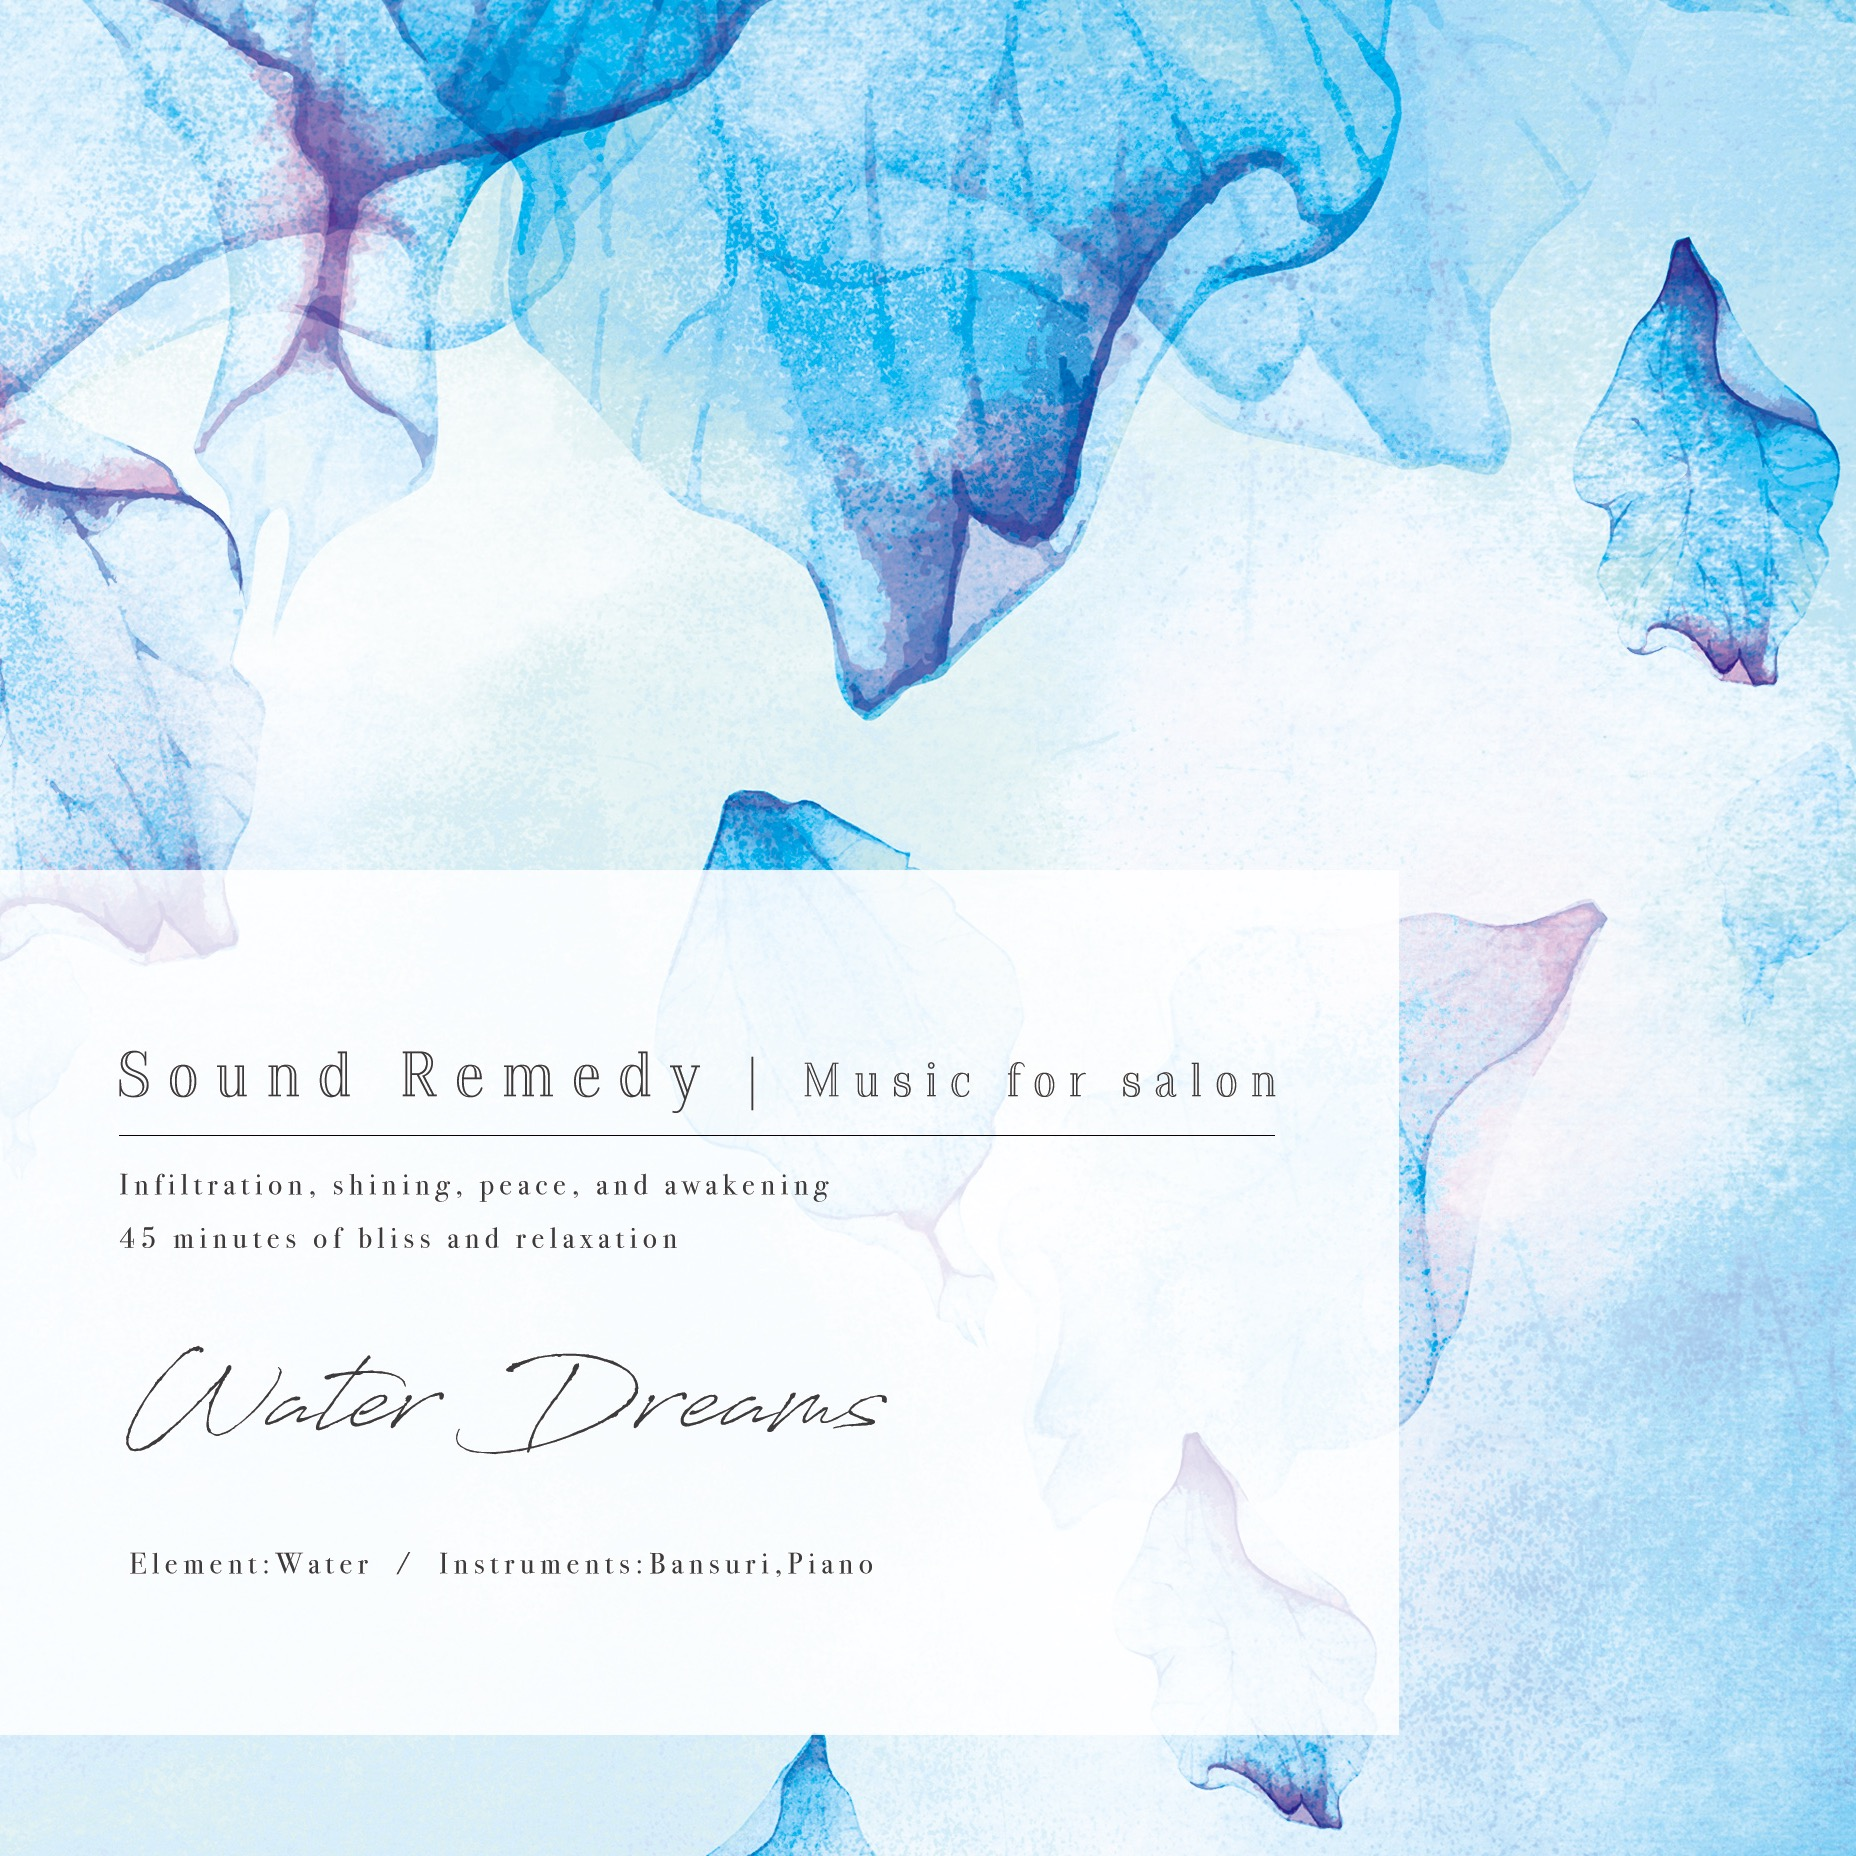 Sound Remedy / Music for Salon